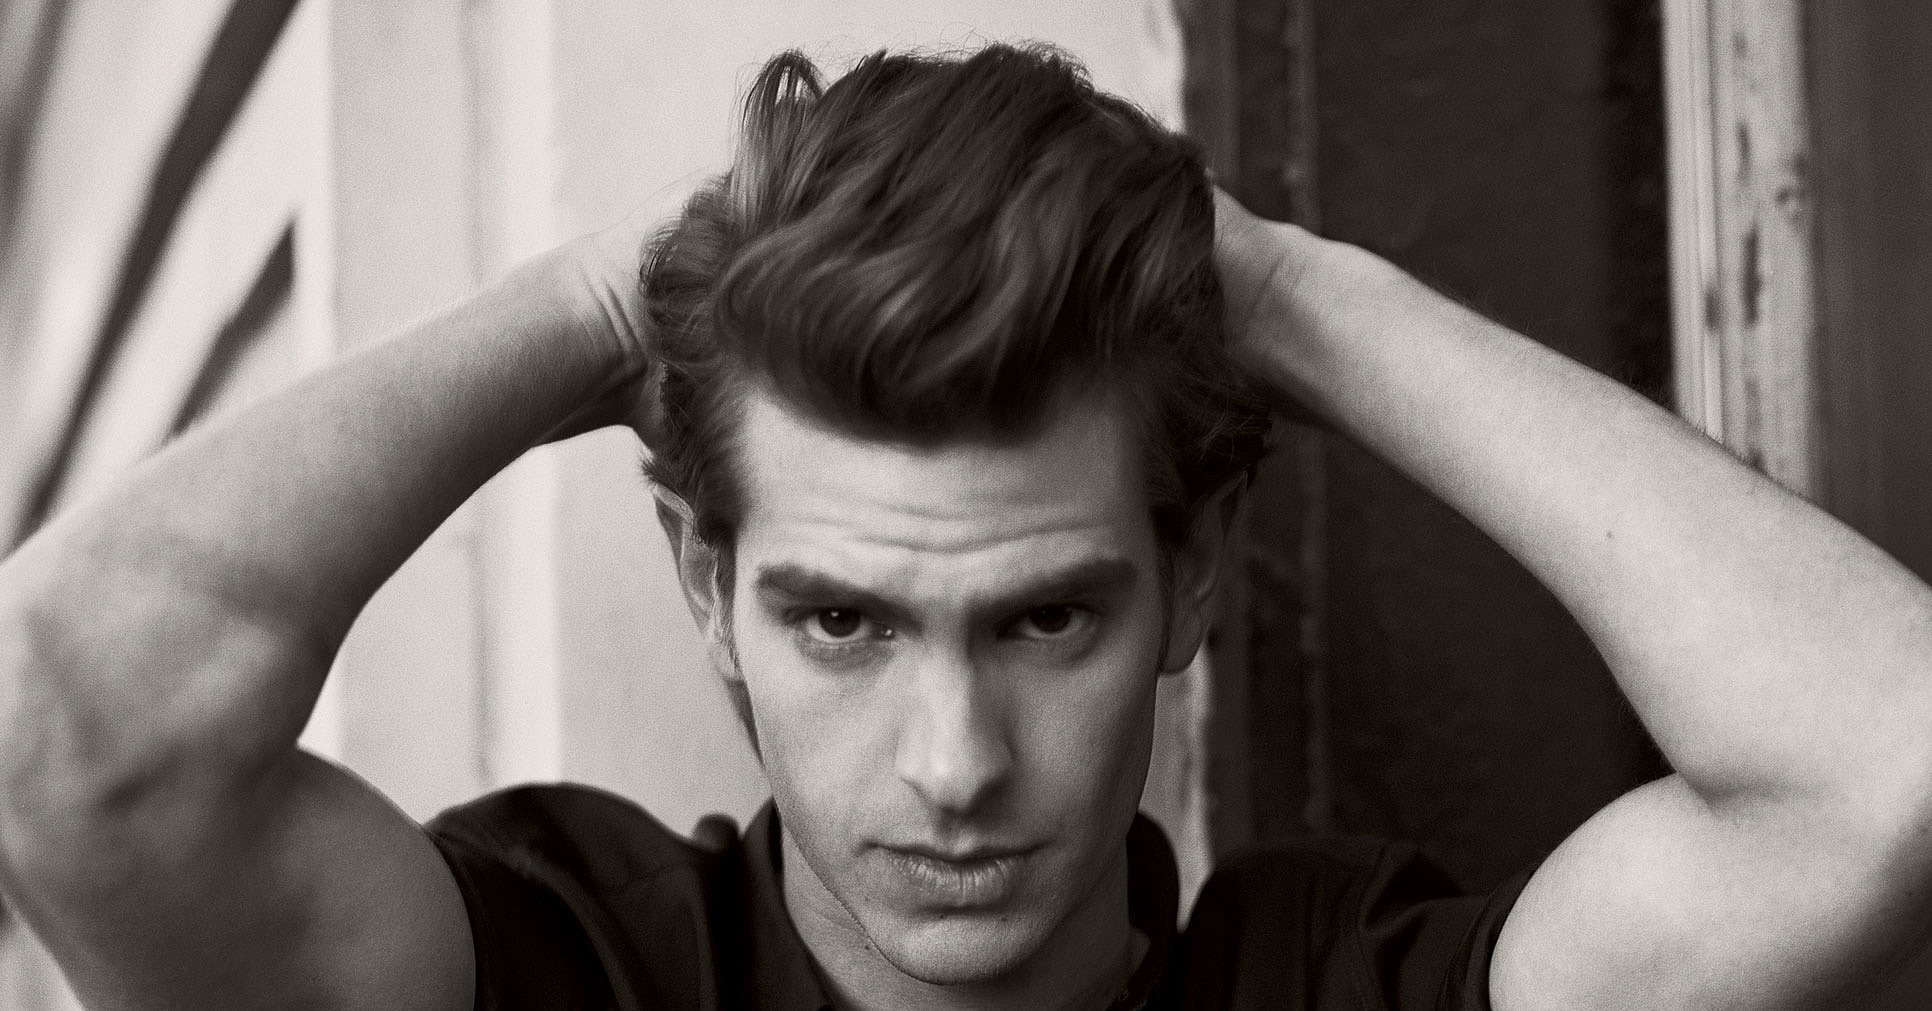 Andrew Garfield  Height, Weight and Body Measurements